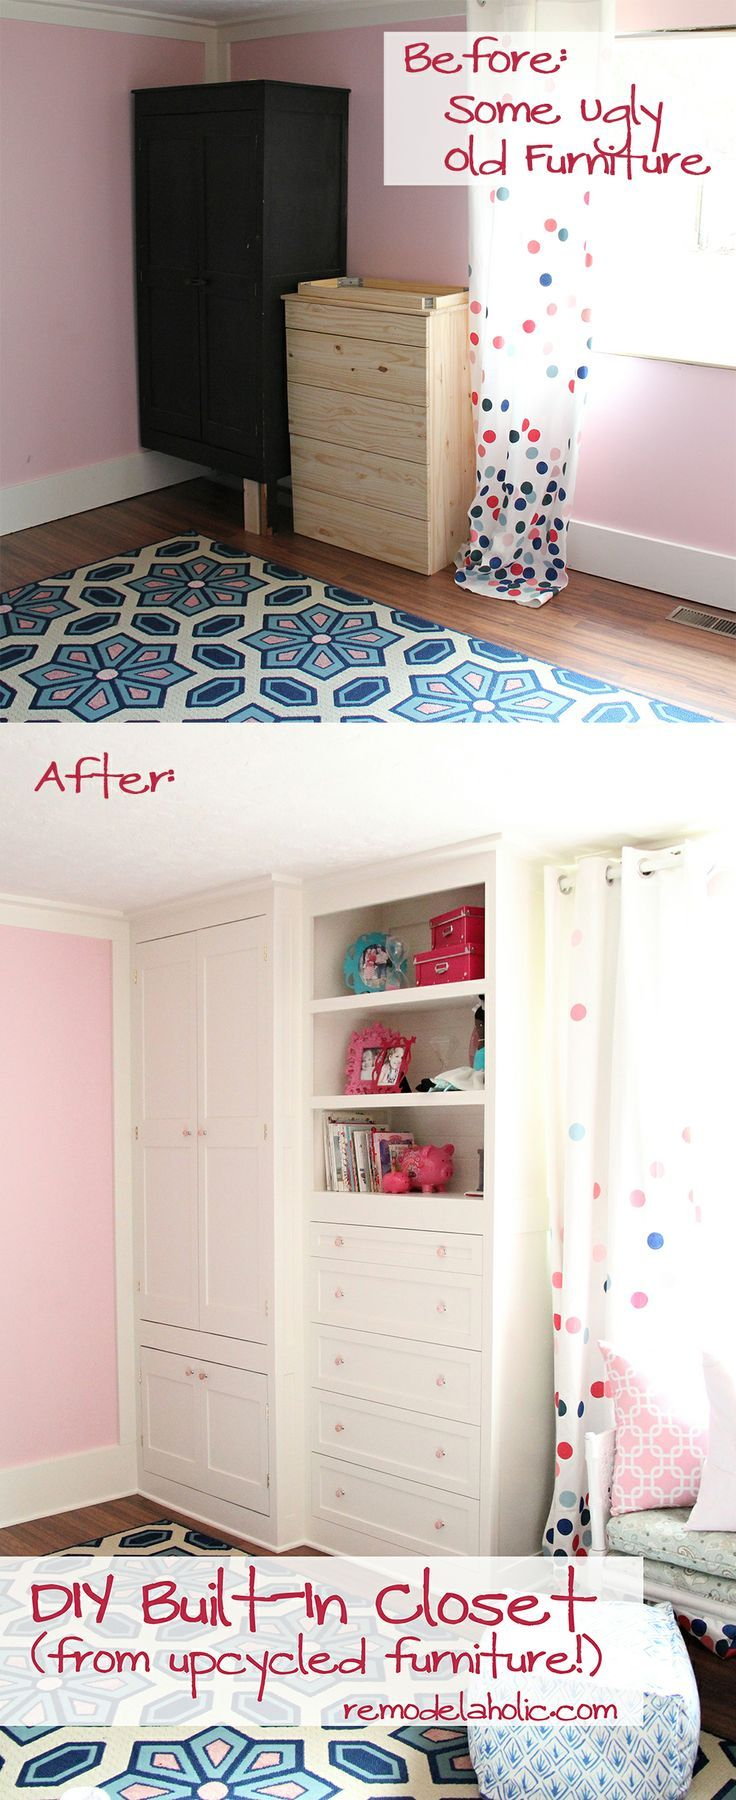 From old furniture to built in closet. Check out the great tutorial @Remodelaholic